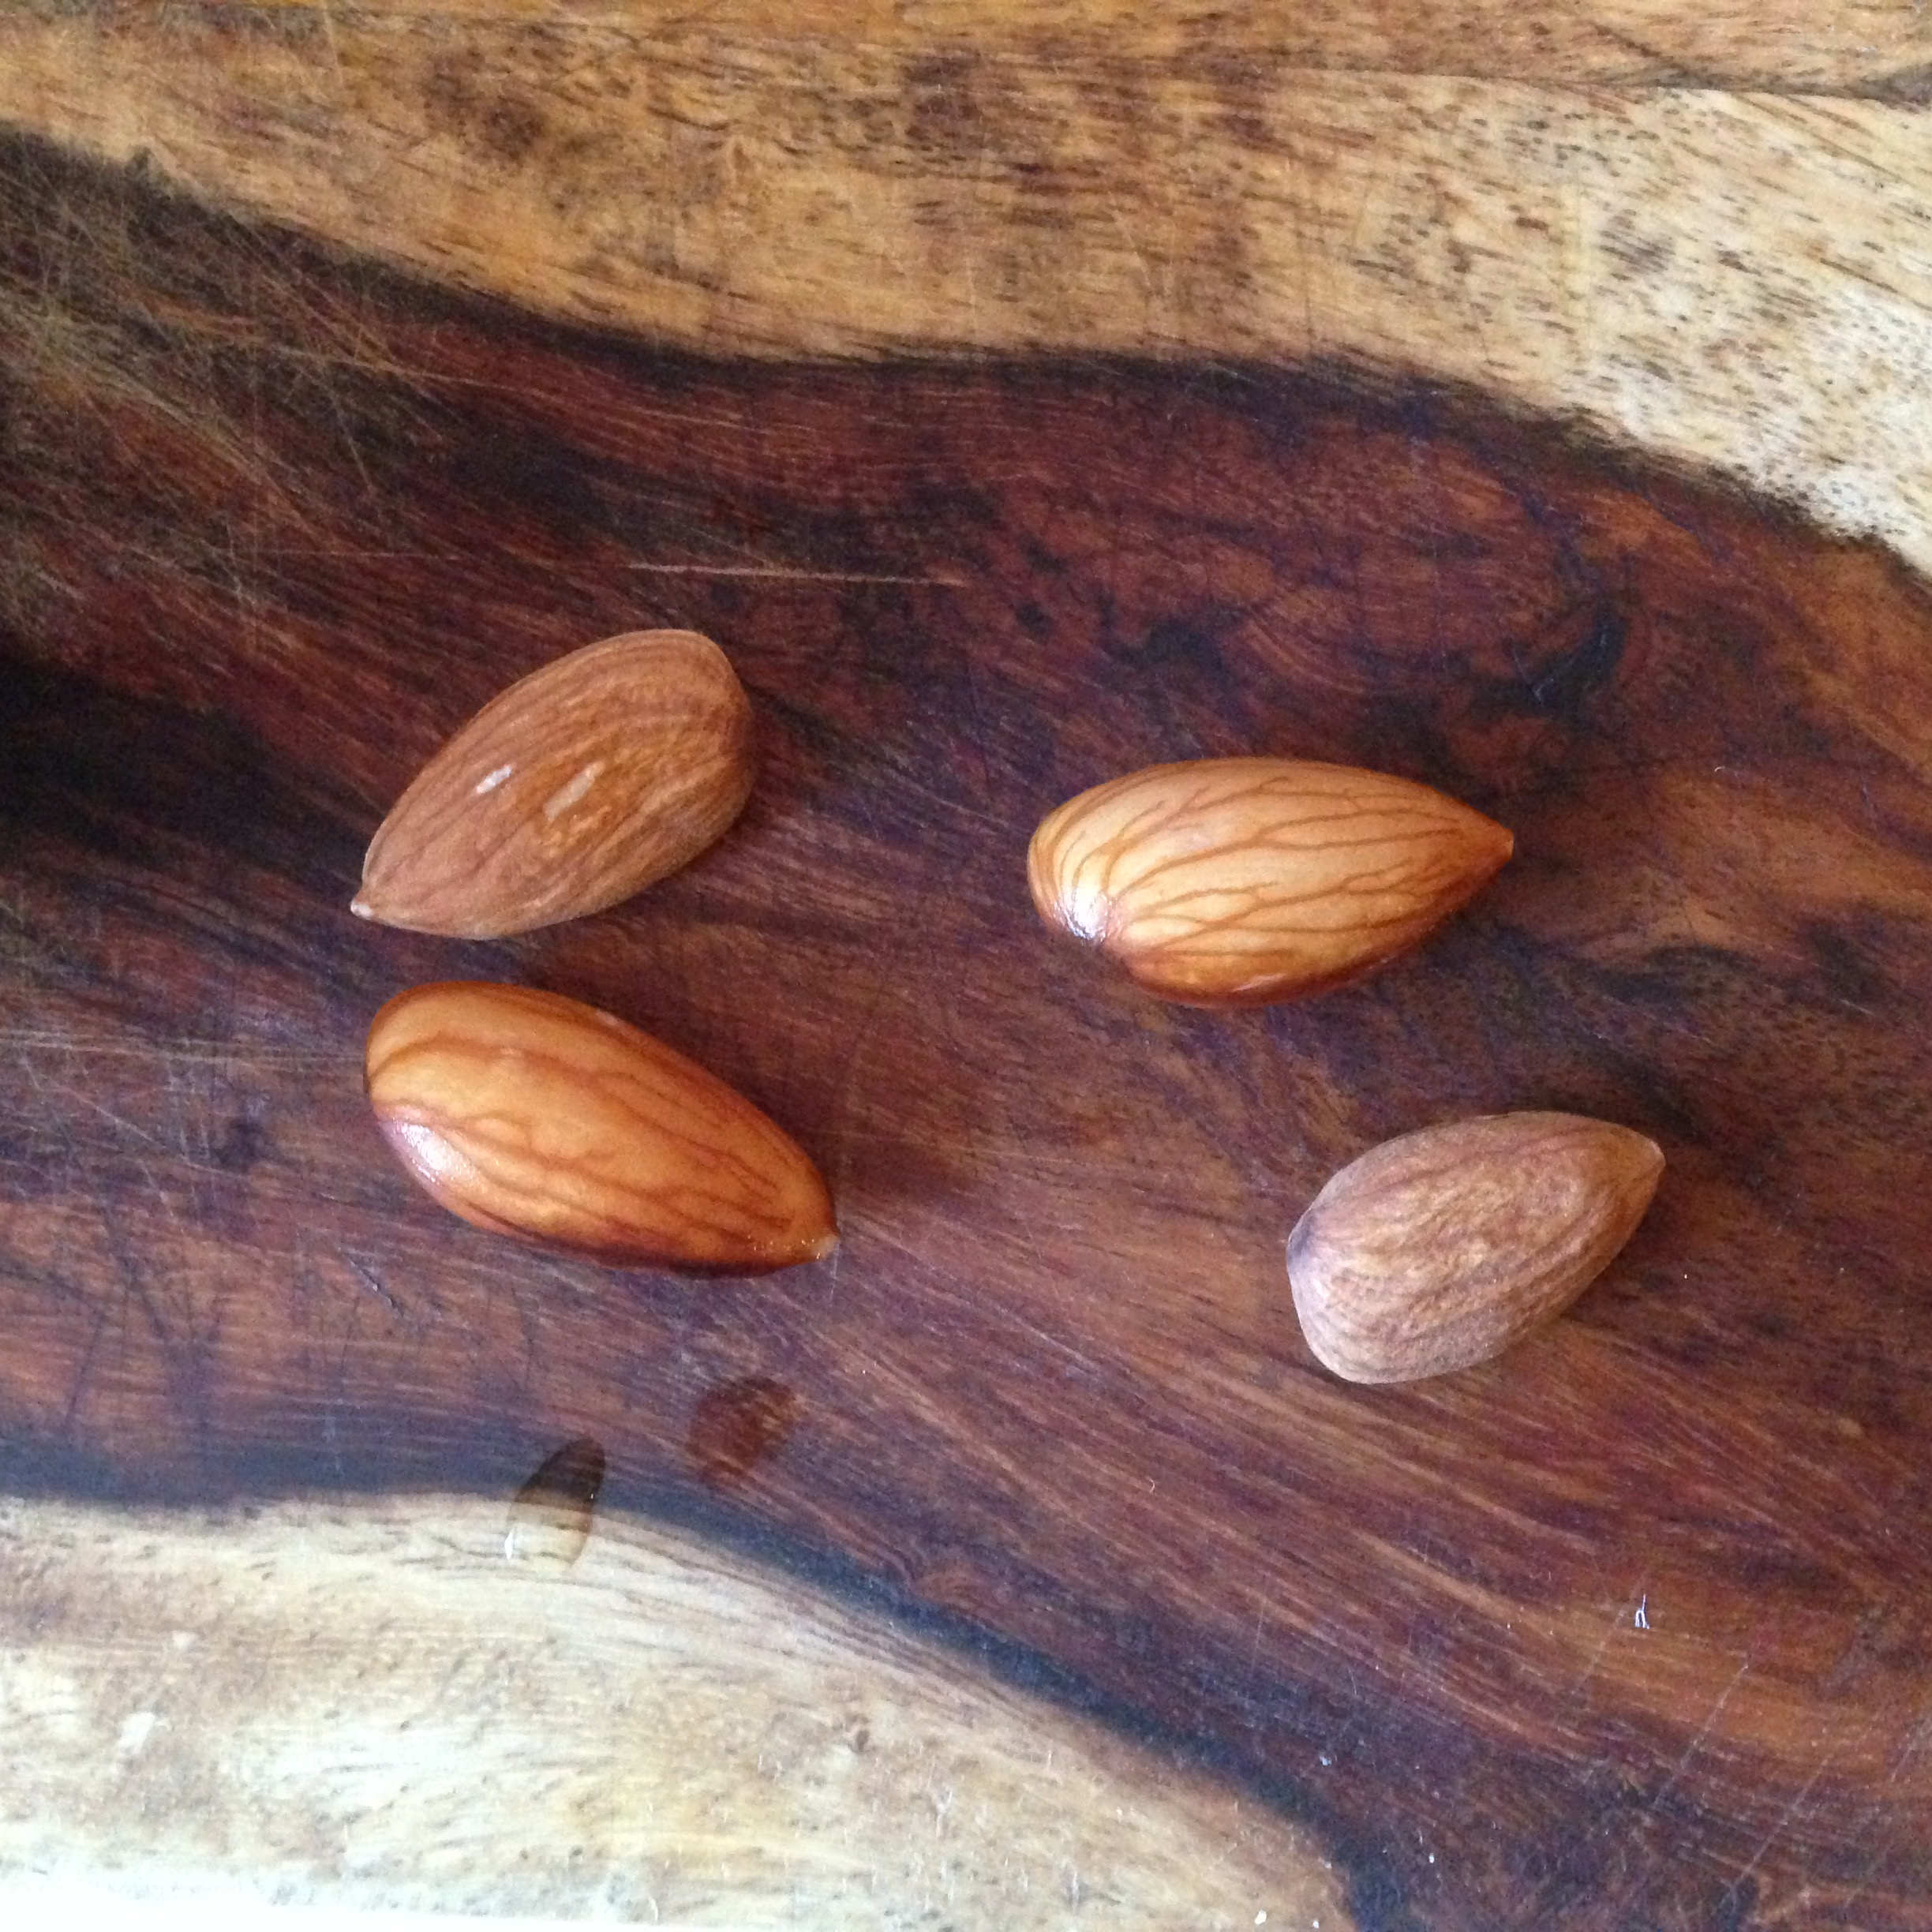 The almonds will swell in size after soaking.